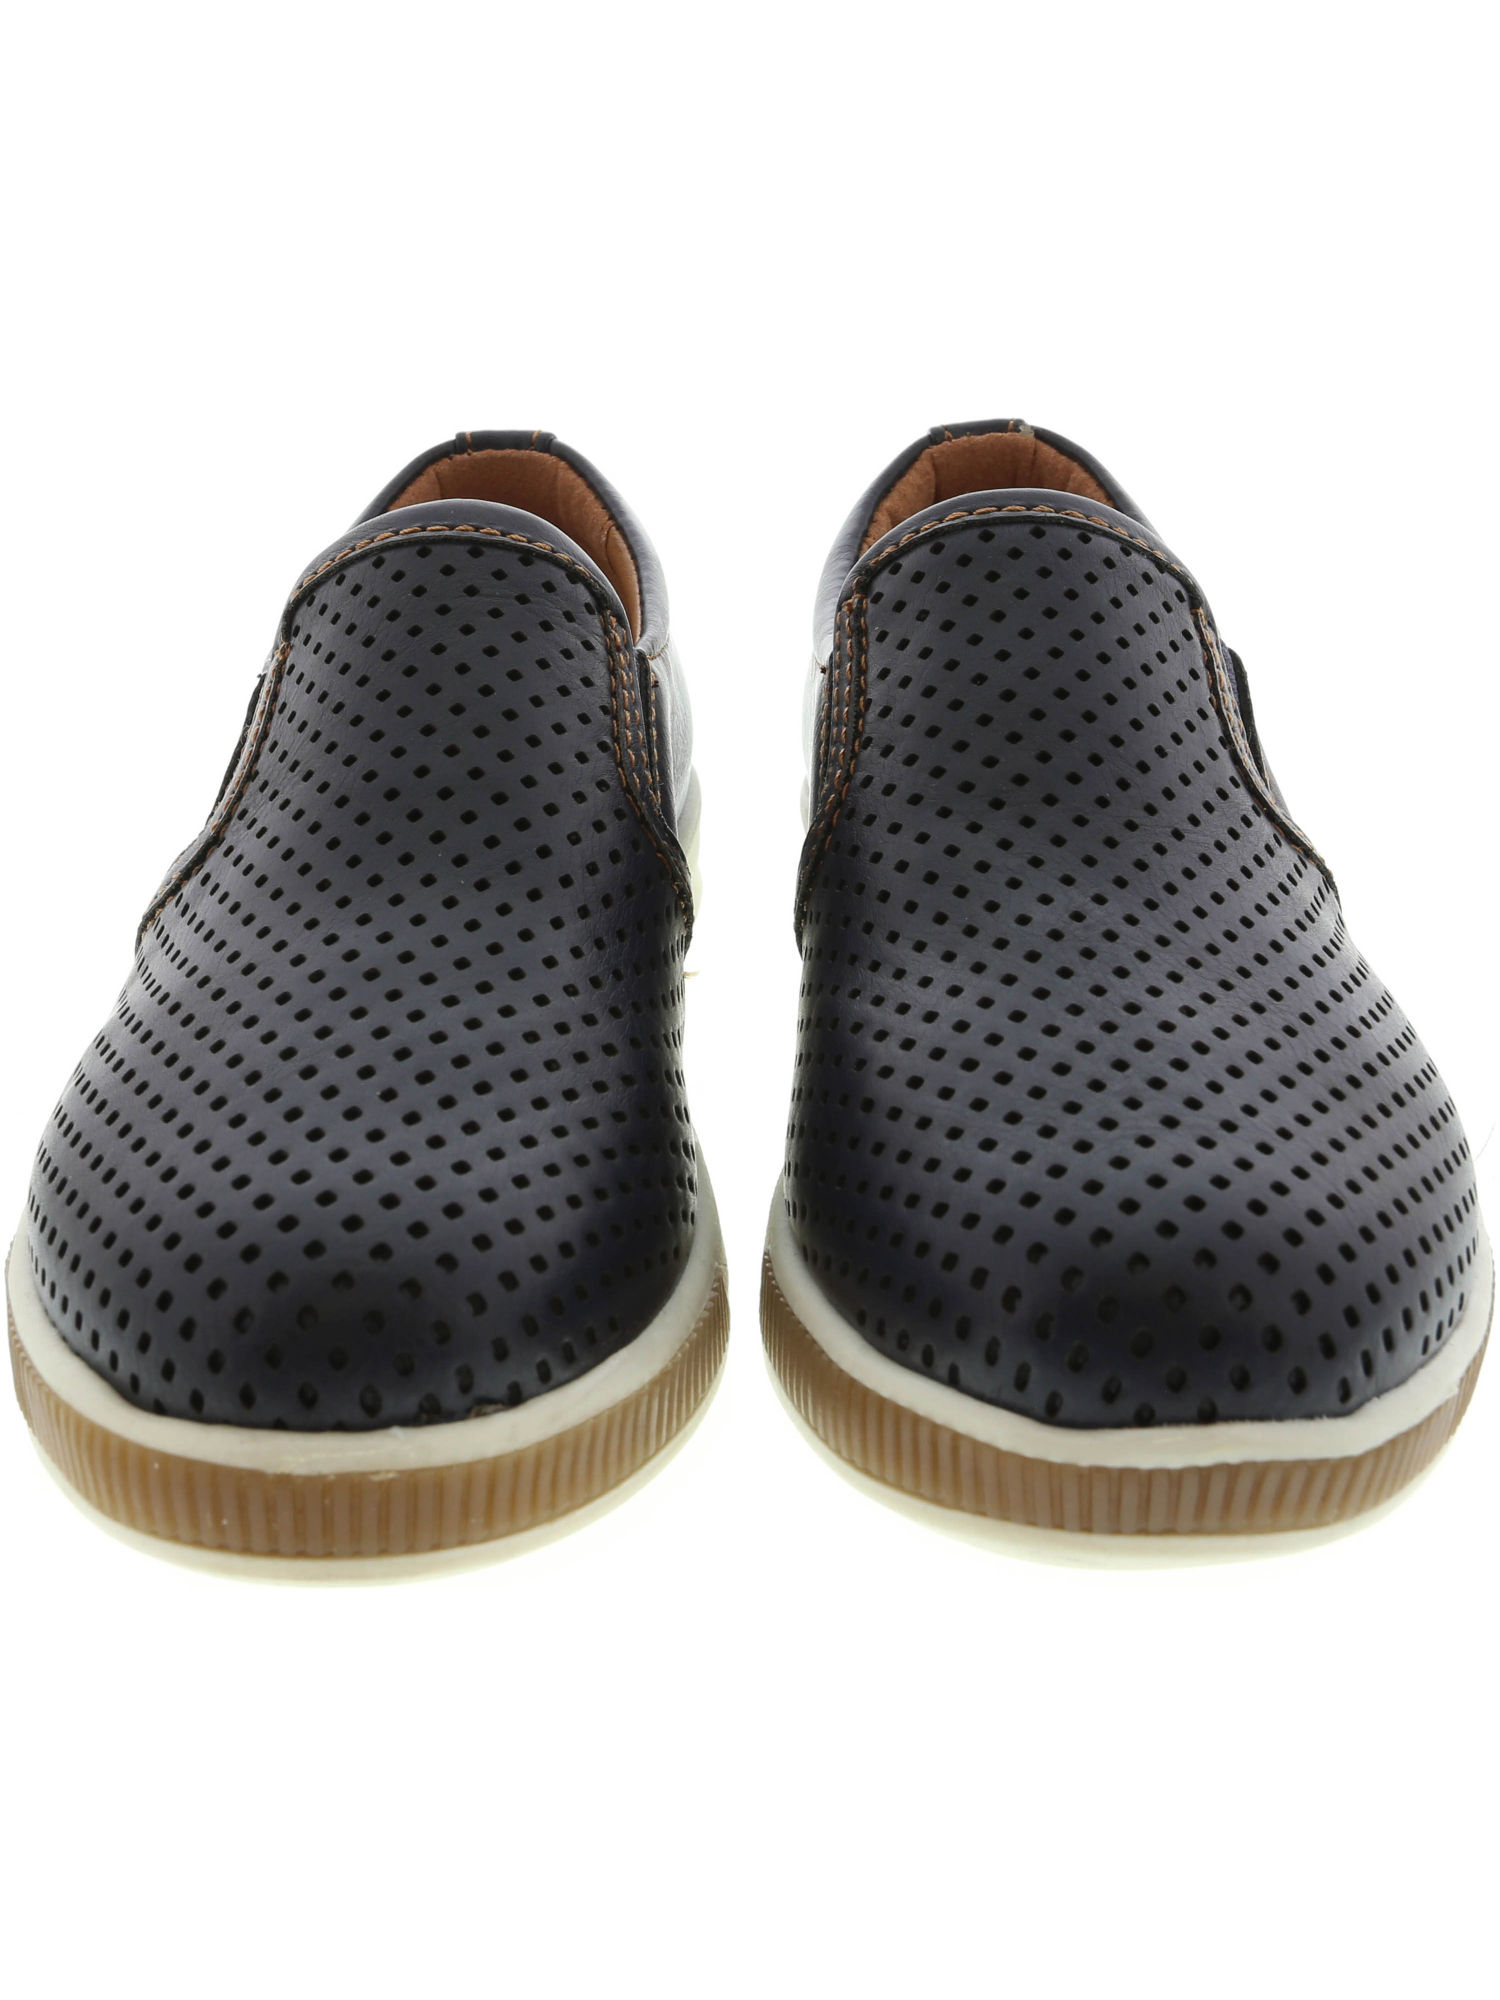 Deer Stags Jace Ankle-High Slip-On Shoes